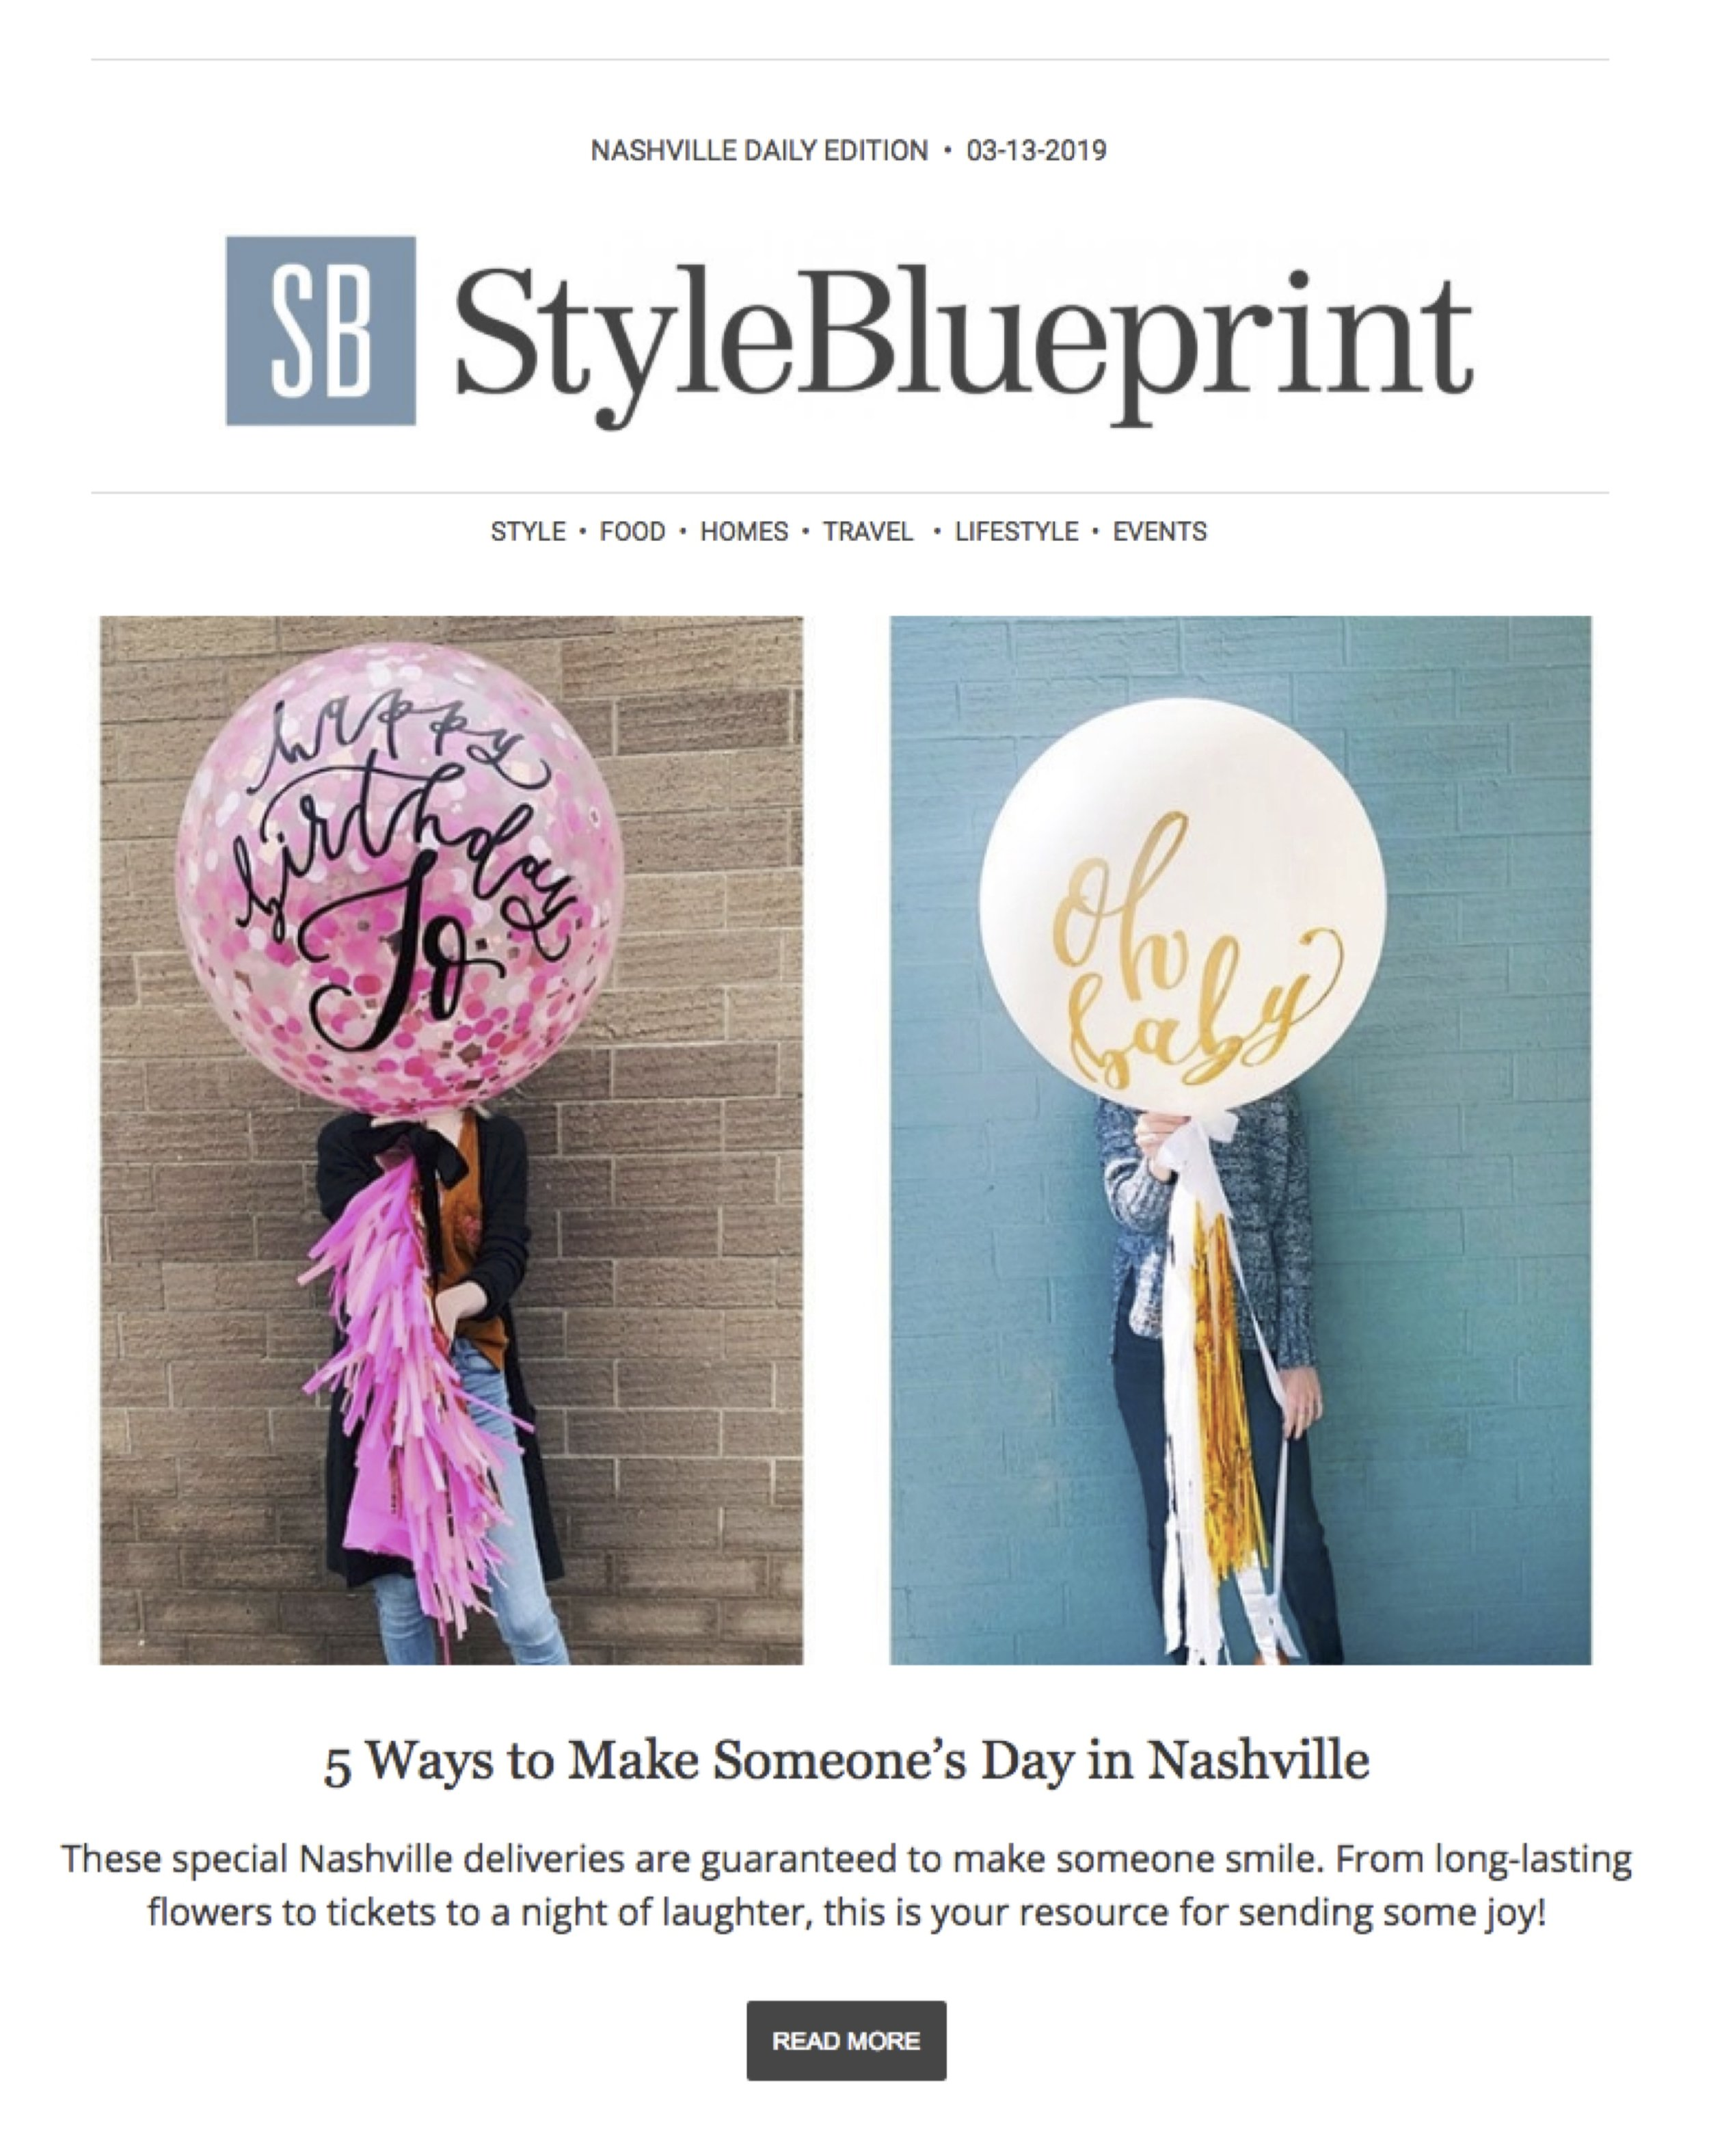 STYLEBLUEPRINT NEWSLETTER 13 MARCH 2019 vroom vroom balloon.jpg